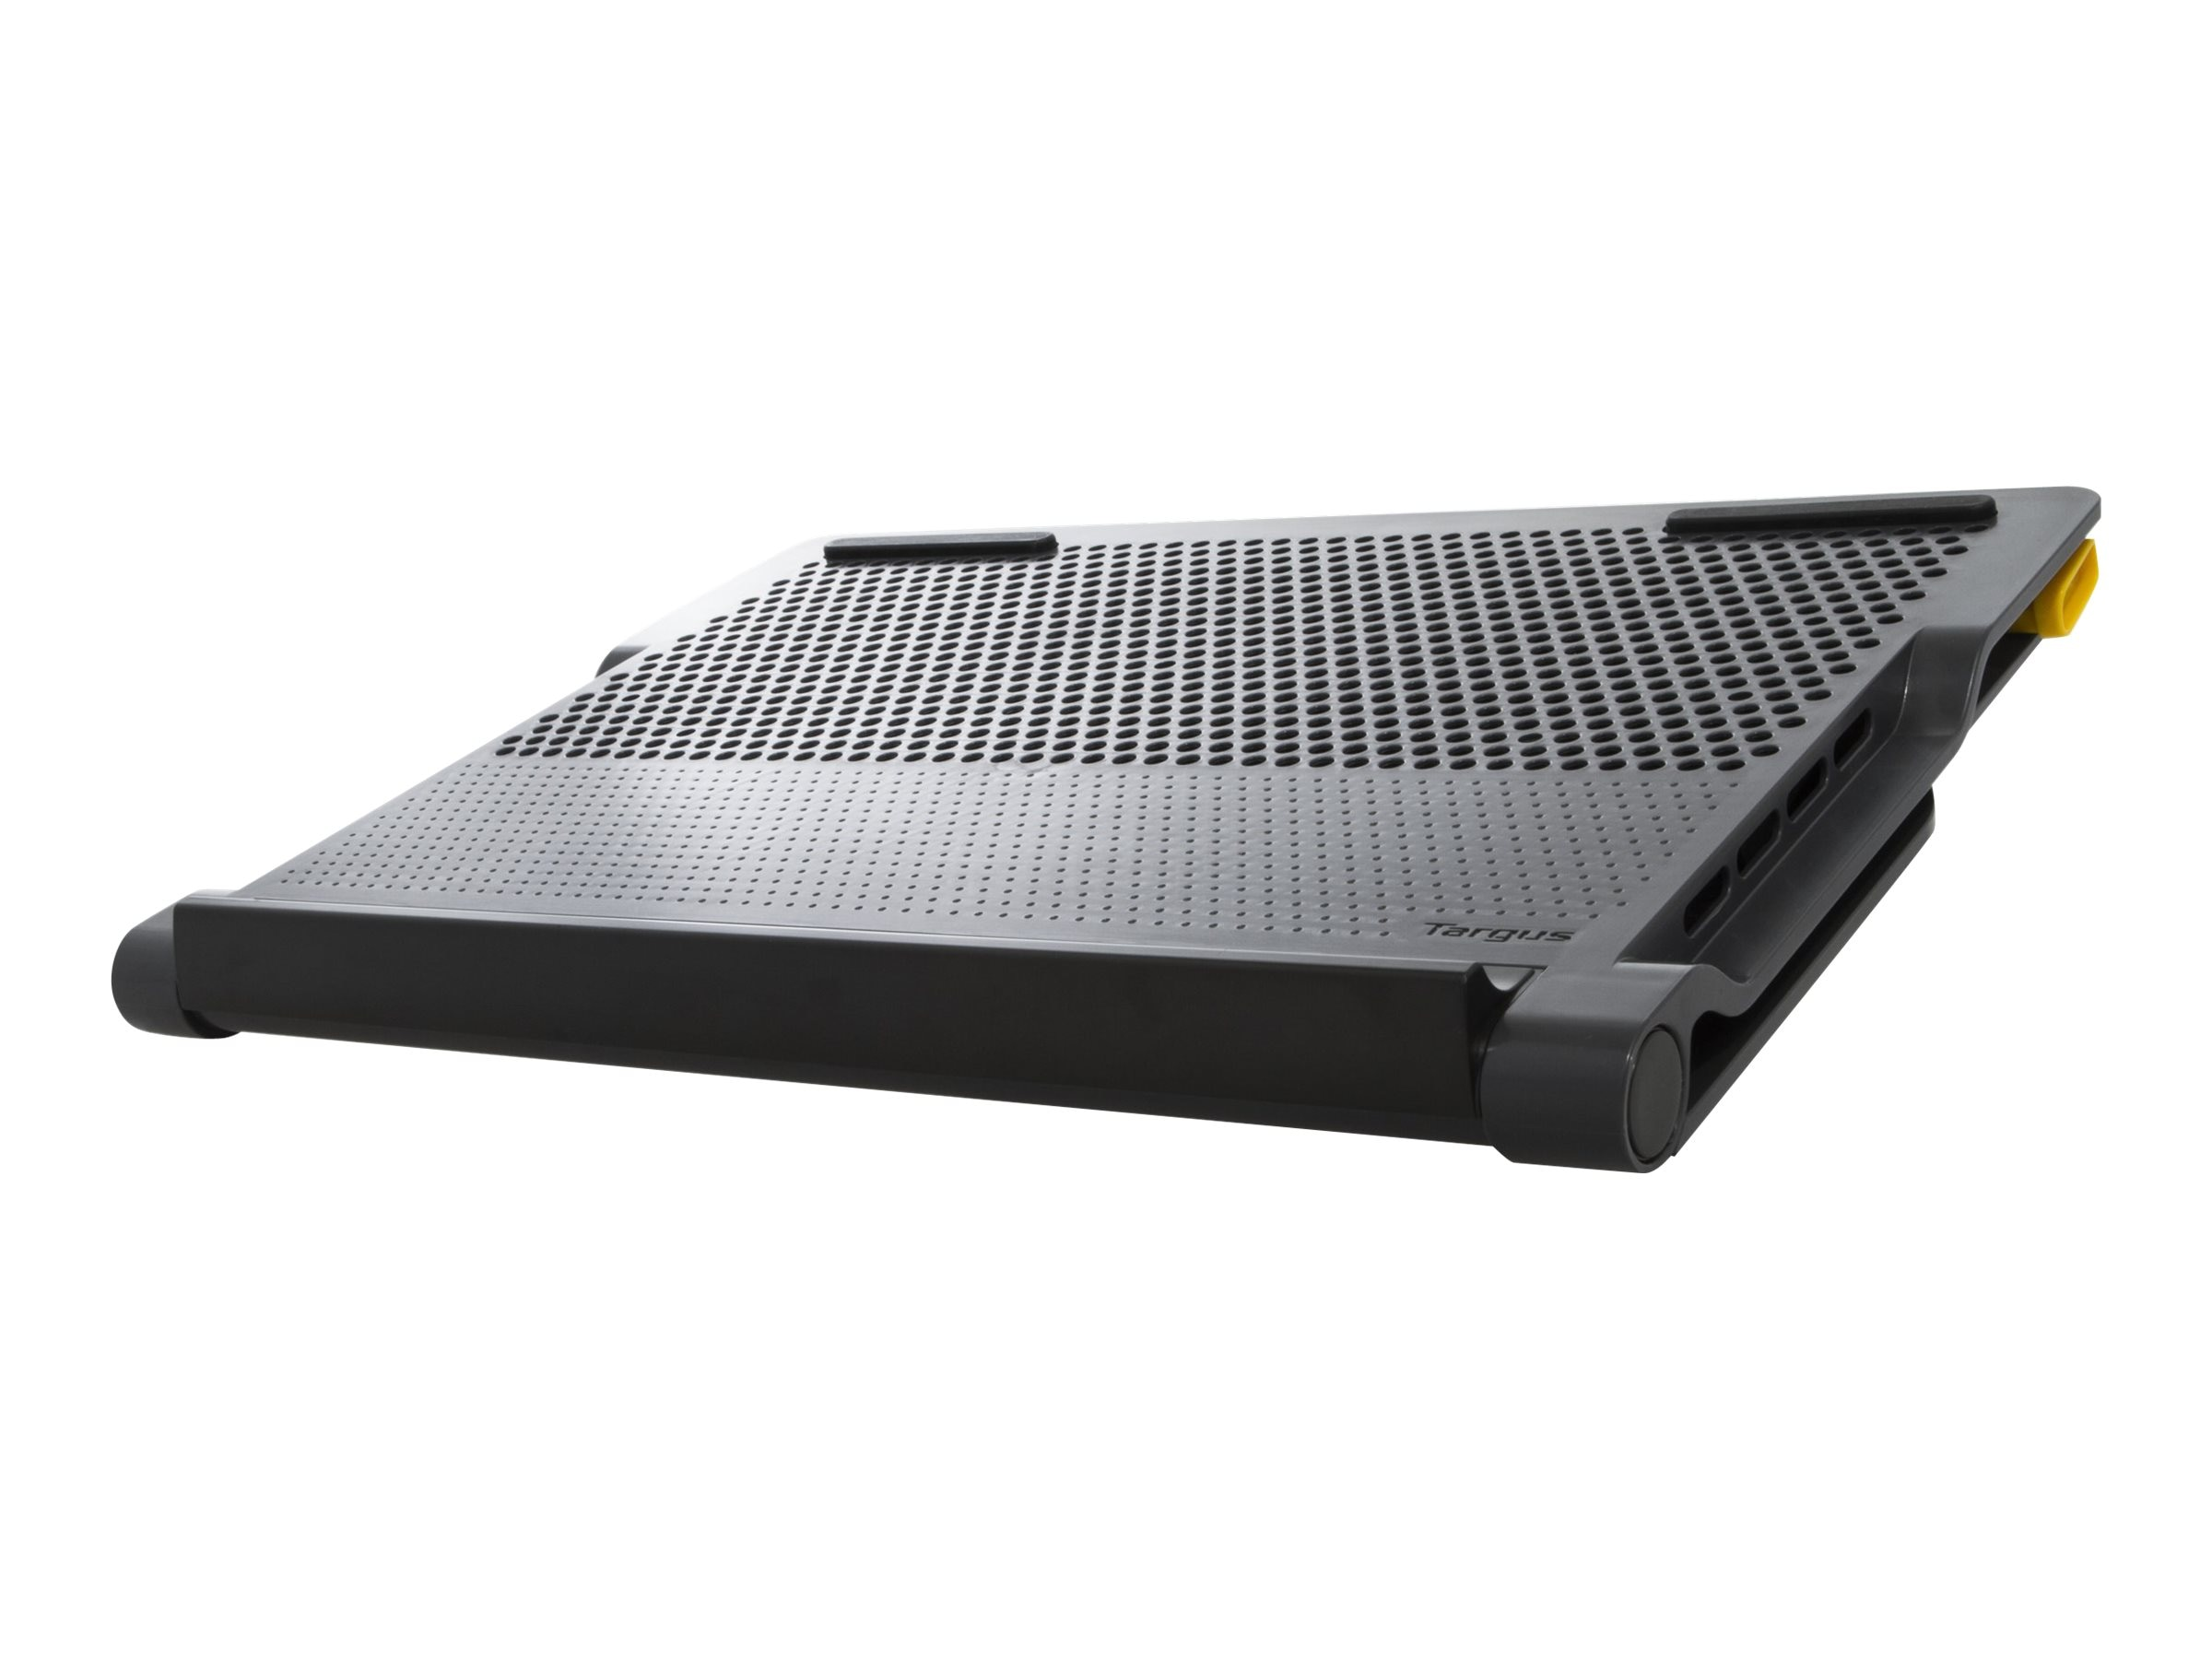 Targus Space Saving Chill Mat, 4 Port Dock Hub, Black, AWE81US